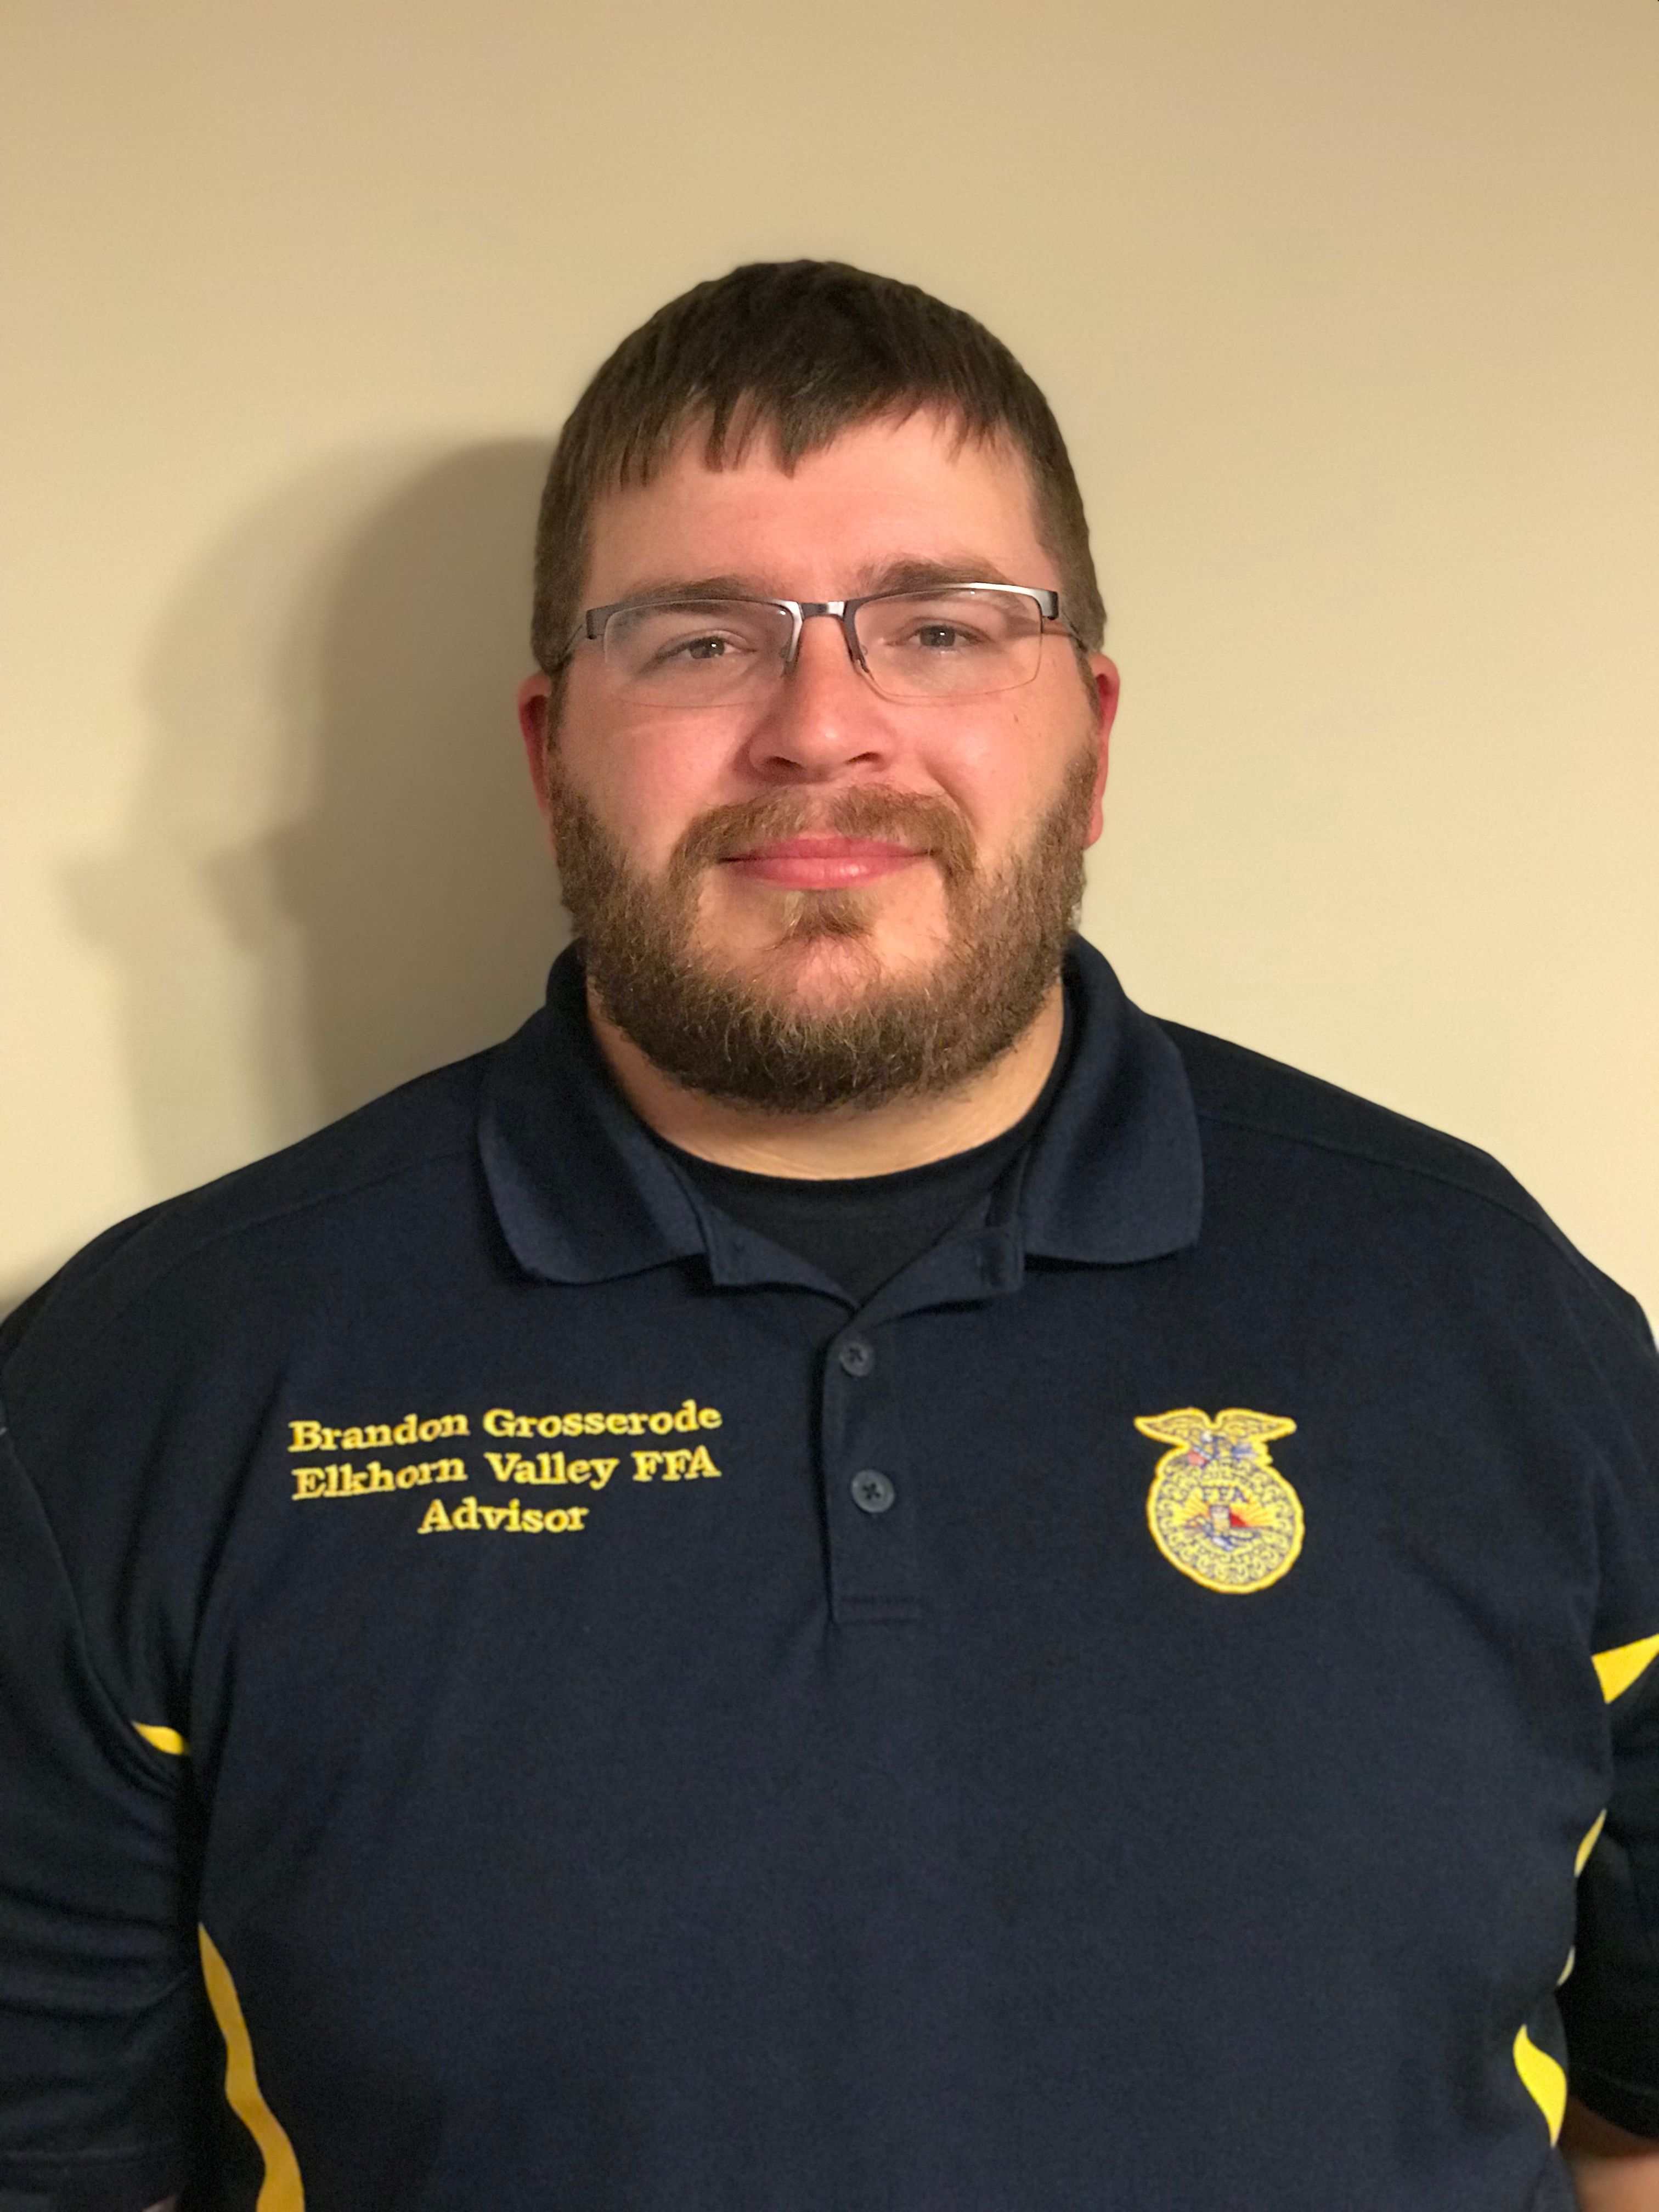 Grosserode Builds New FFA Chapter in Tilden